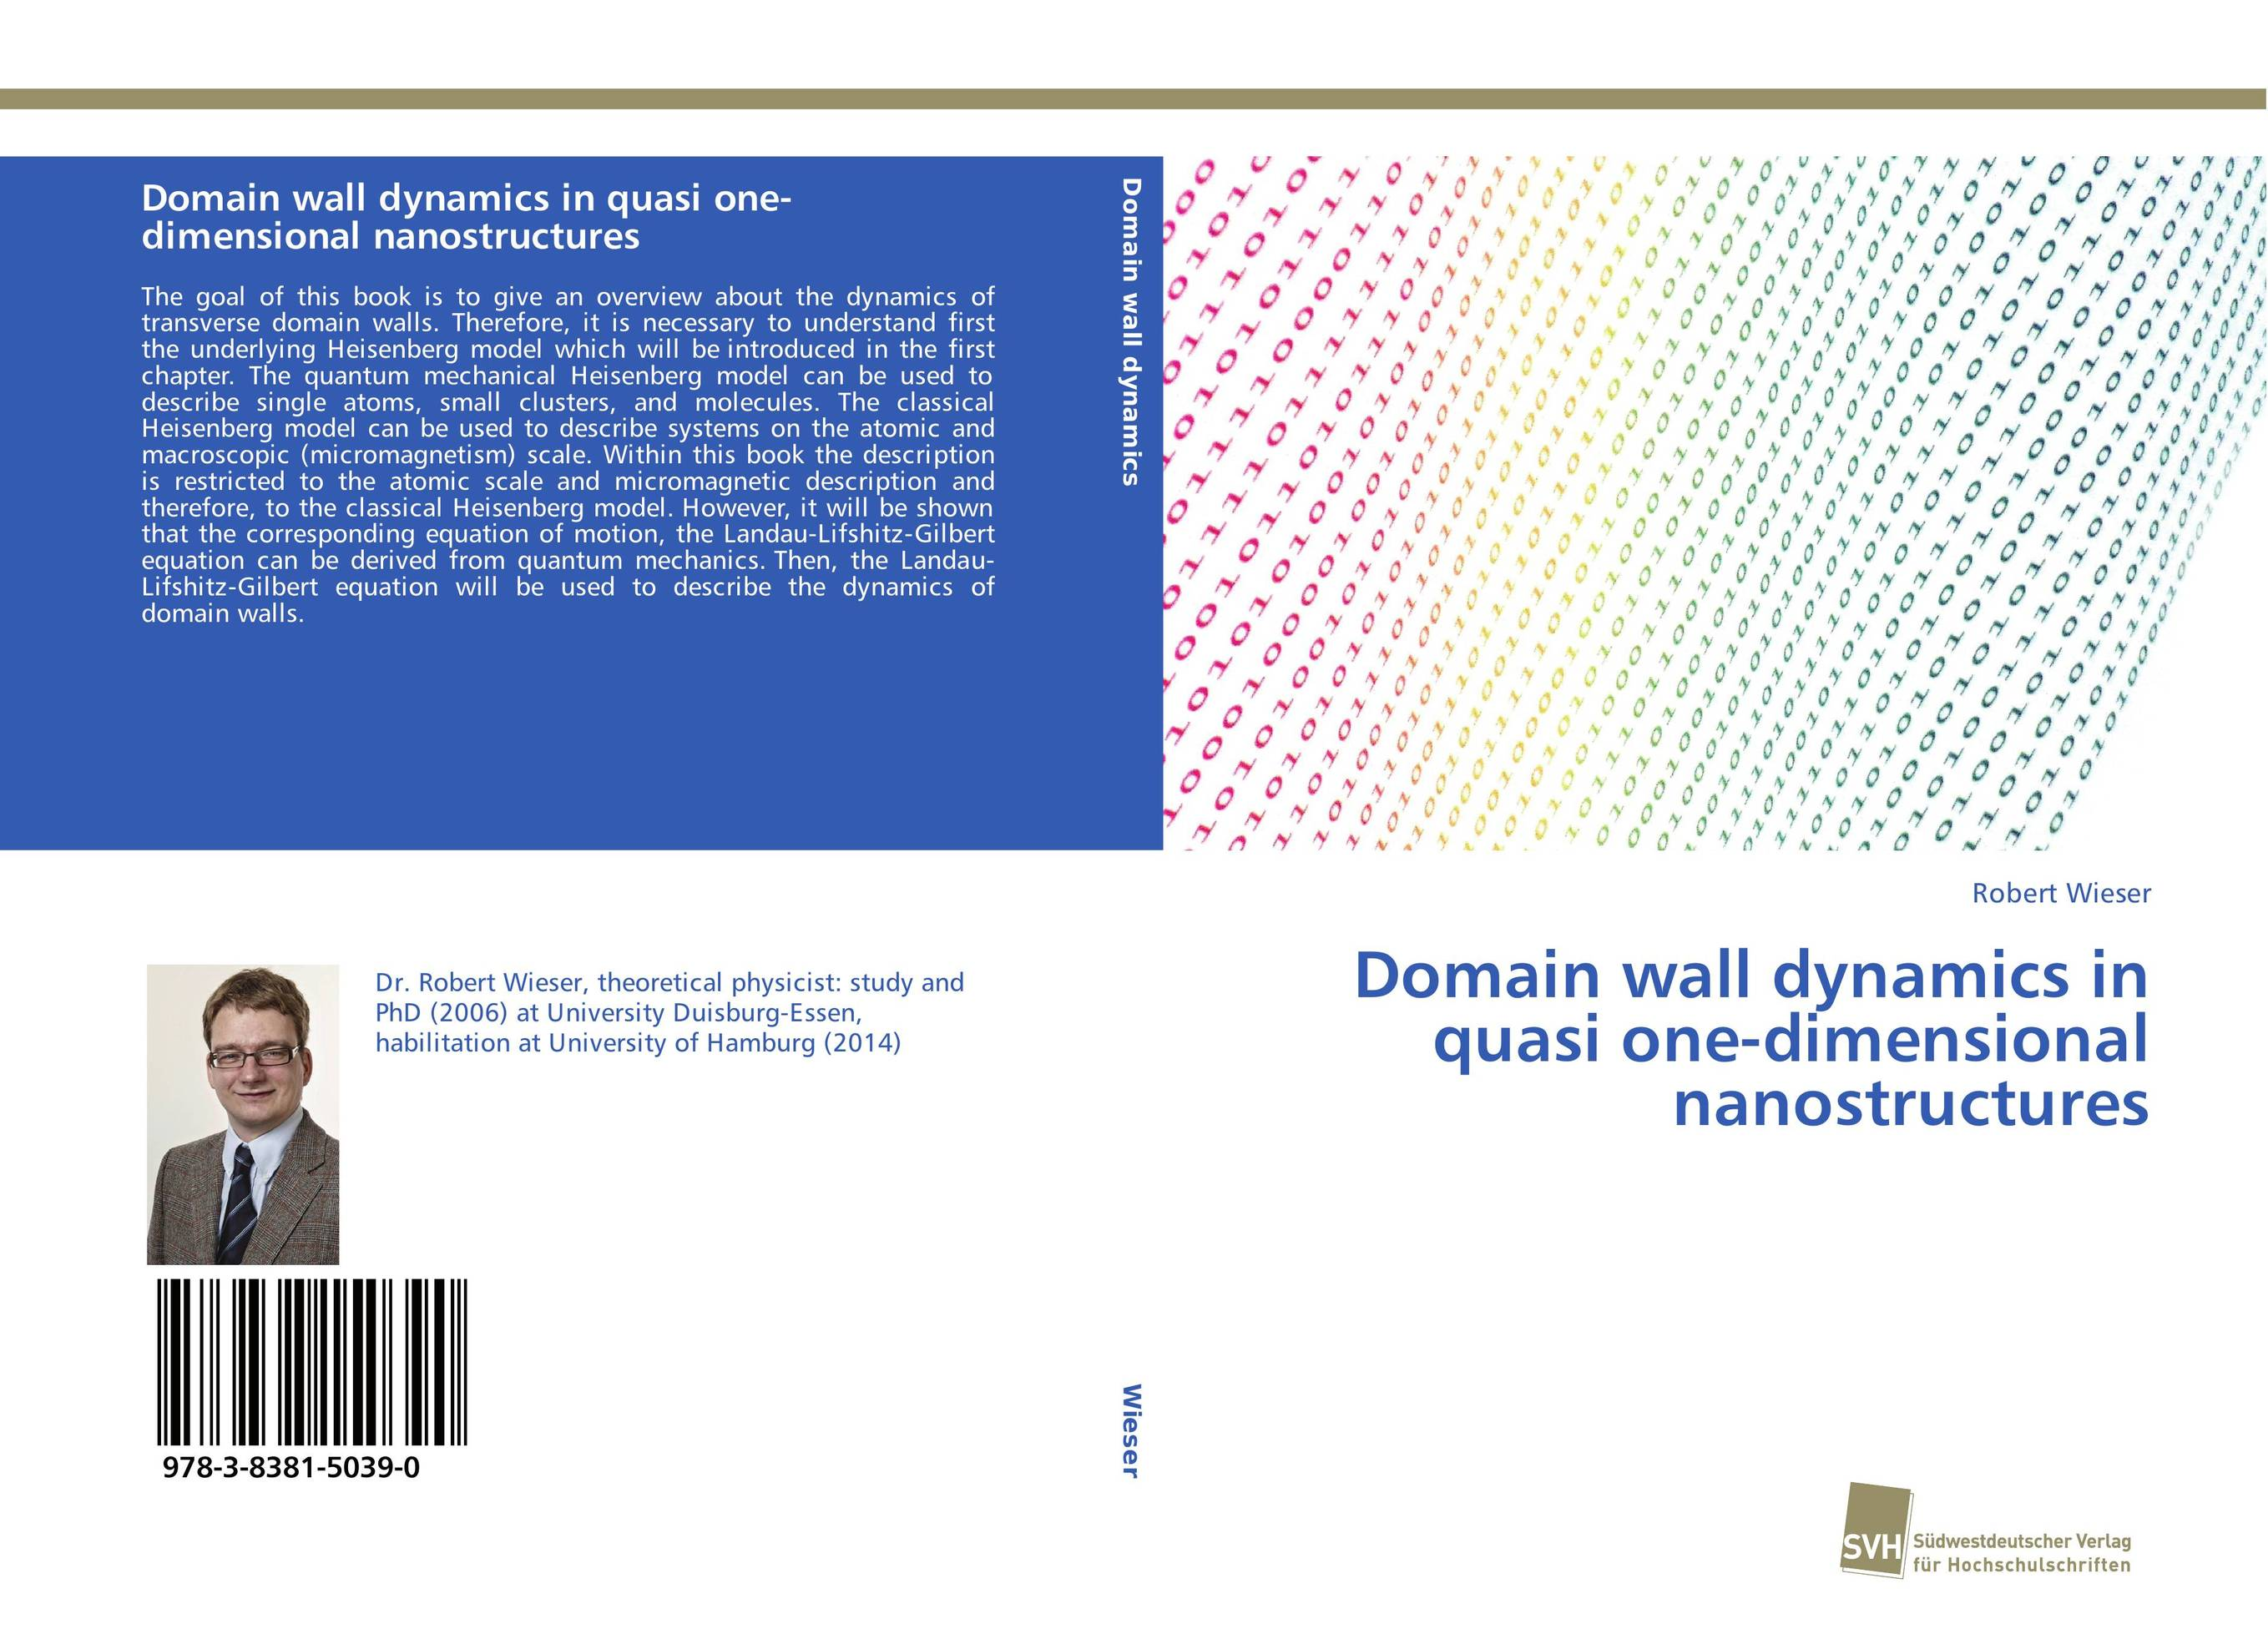 Domain wall dynamics in quasi one-dimensional nanostructures